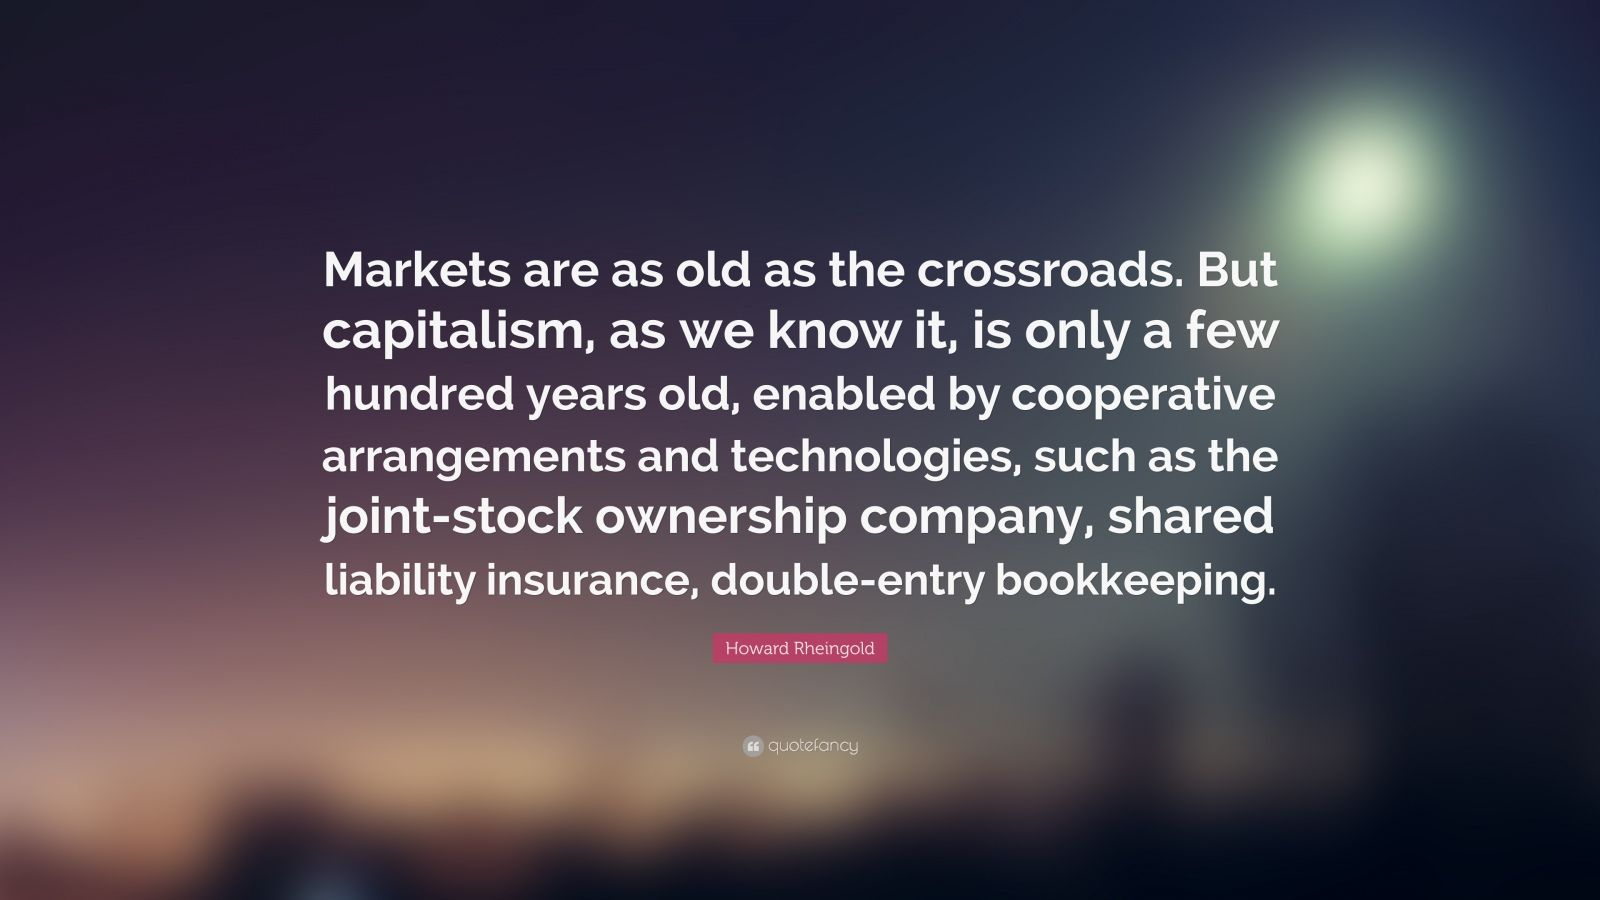 "Howard Rheingold Quote: ""Markets are as old as the crossroads. But capitalism, as we know it, is only a few hundred years old, enabled by cooperative arrangements and technologies, such as the joint-stock ownership company, shared liability insurance, double-entry bookkeeping."""